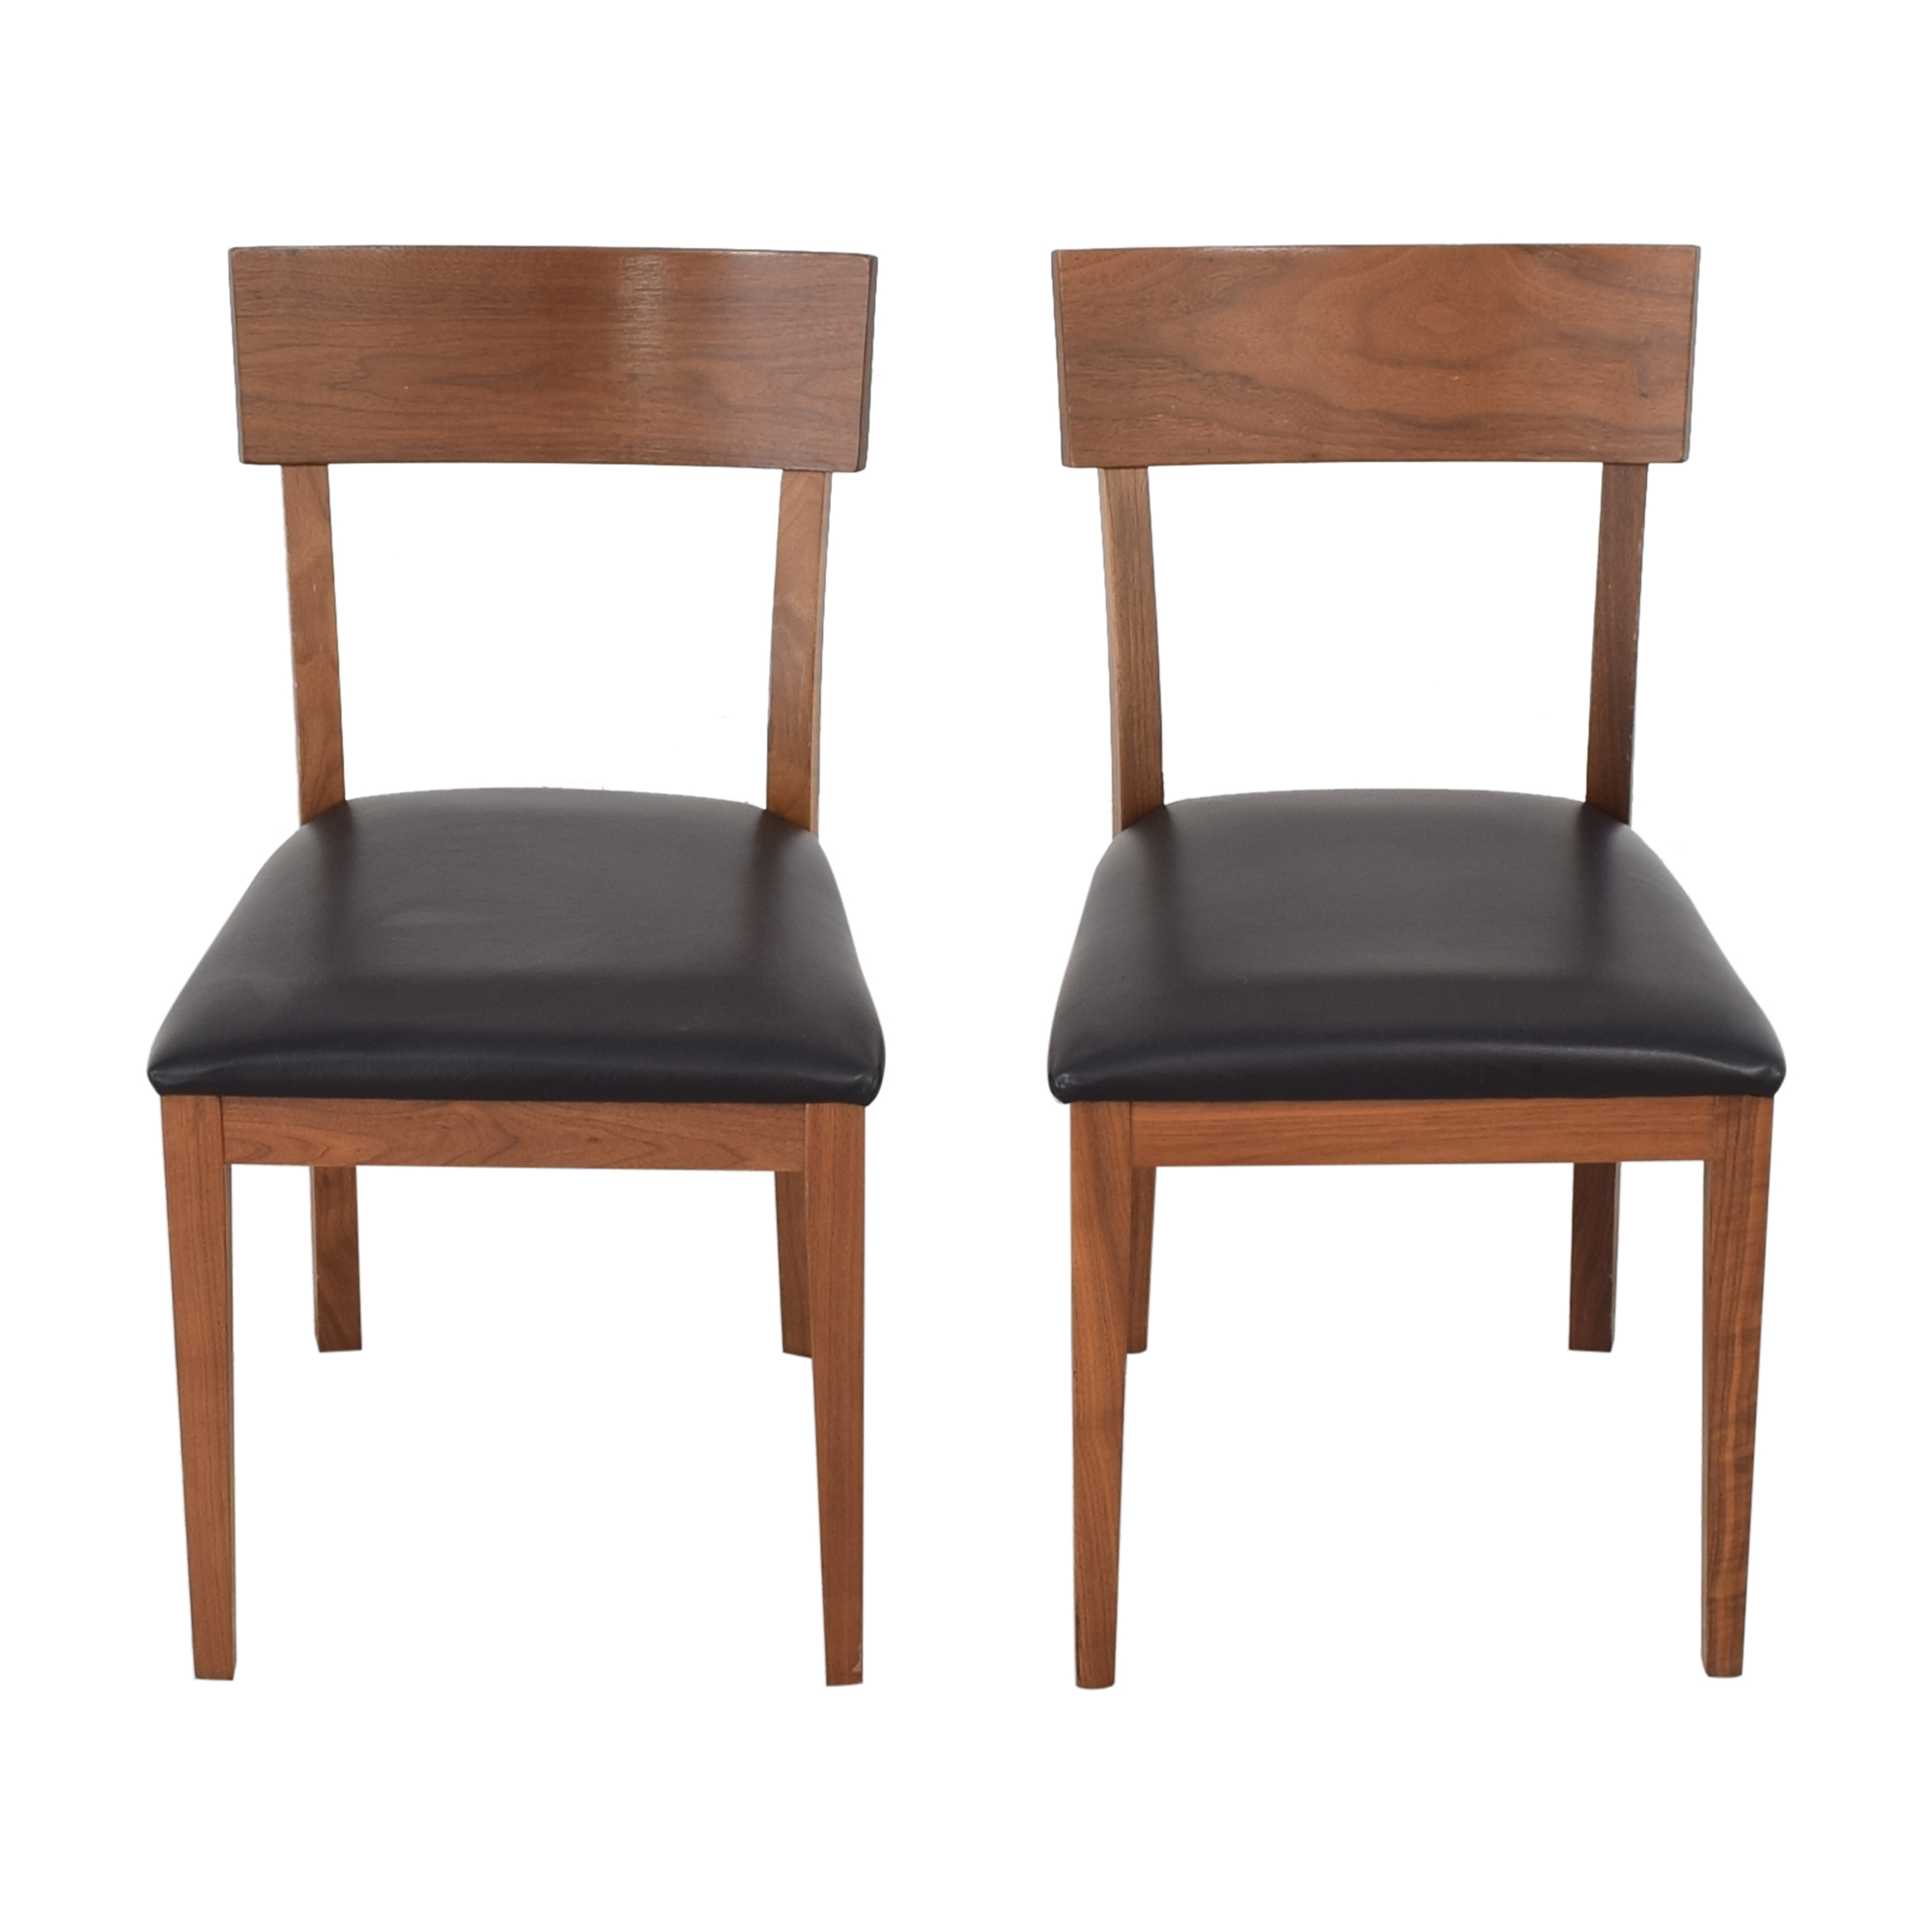 buy Room & Board Doyle Chairs with Fabric Seat Room & Board Chairs